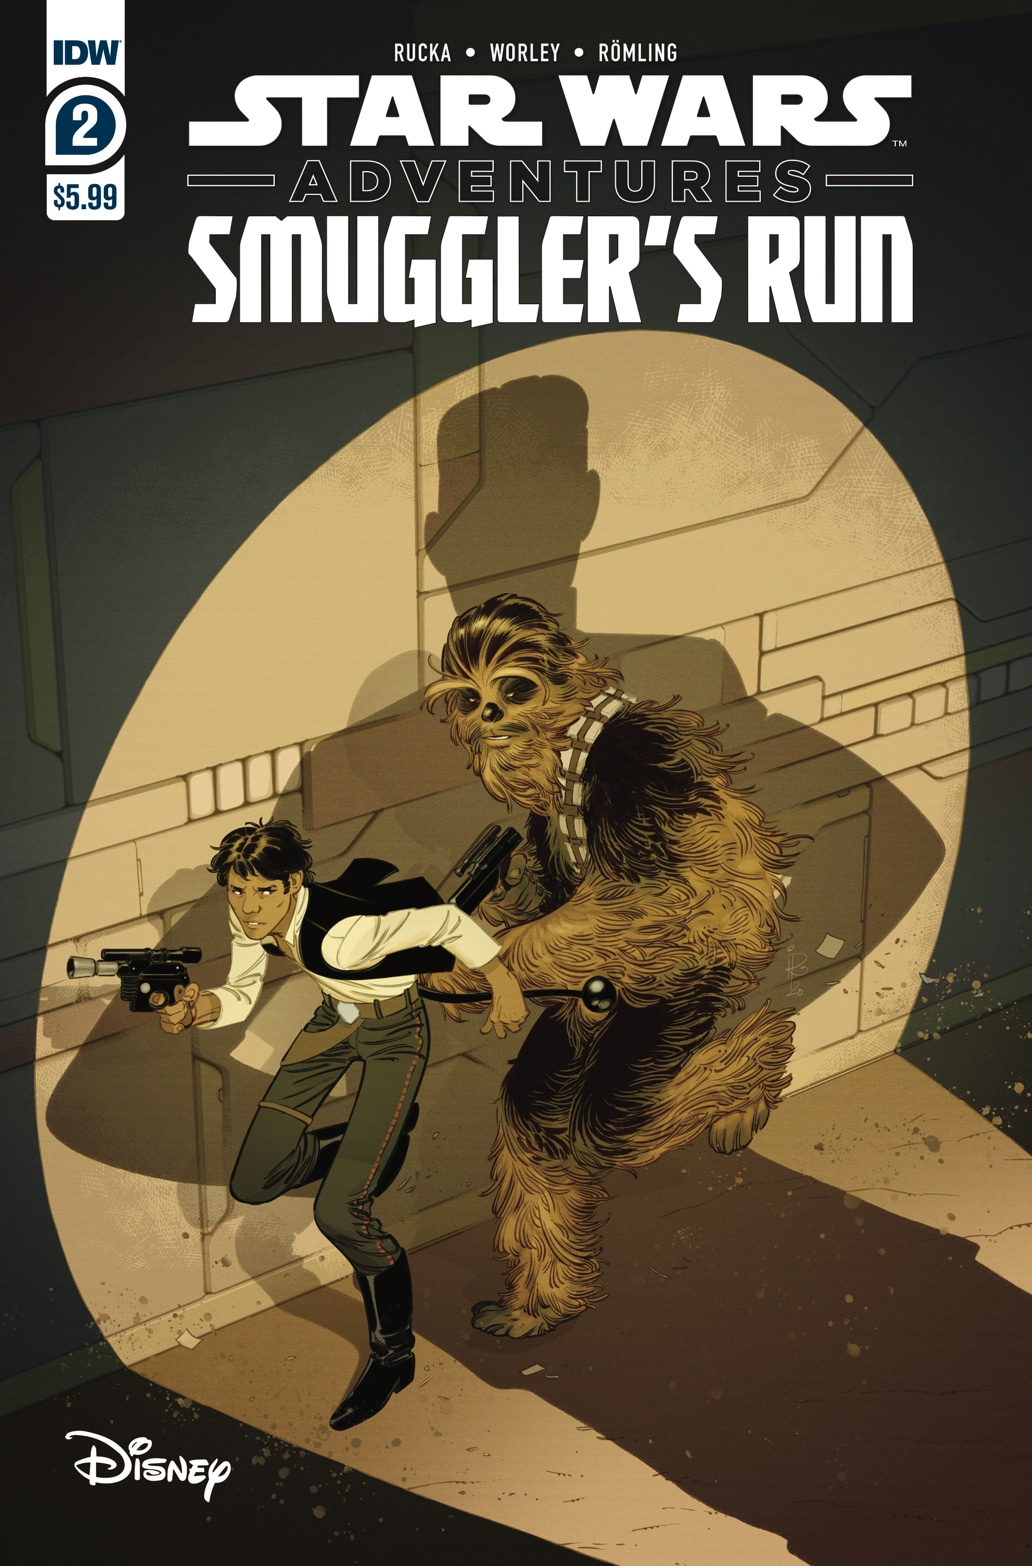 Star Wars Adventures: Smuggler's Run #2 (20.01.2021)